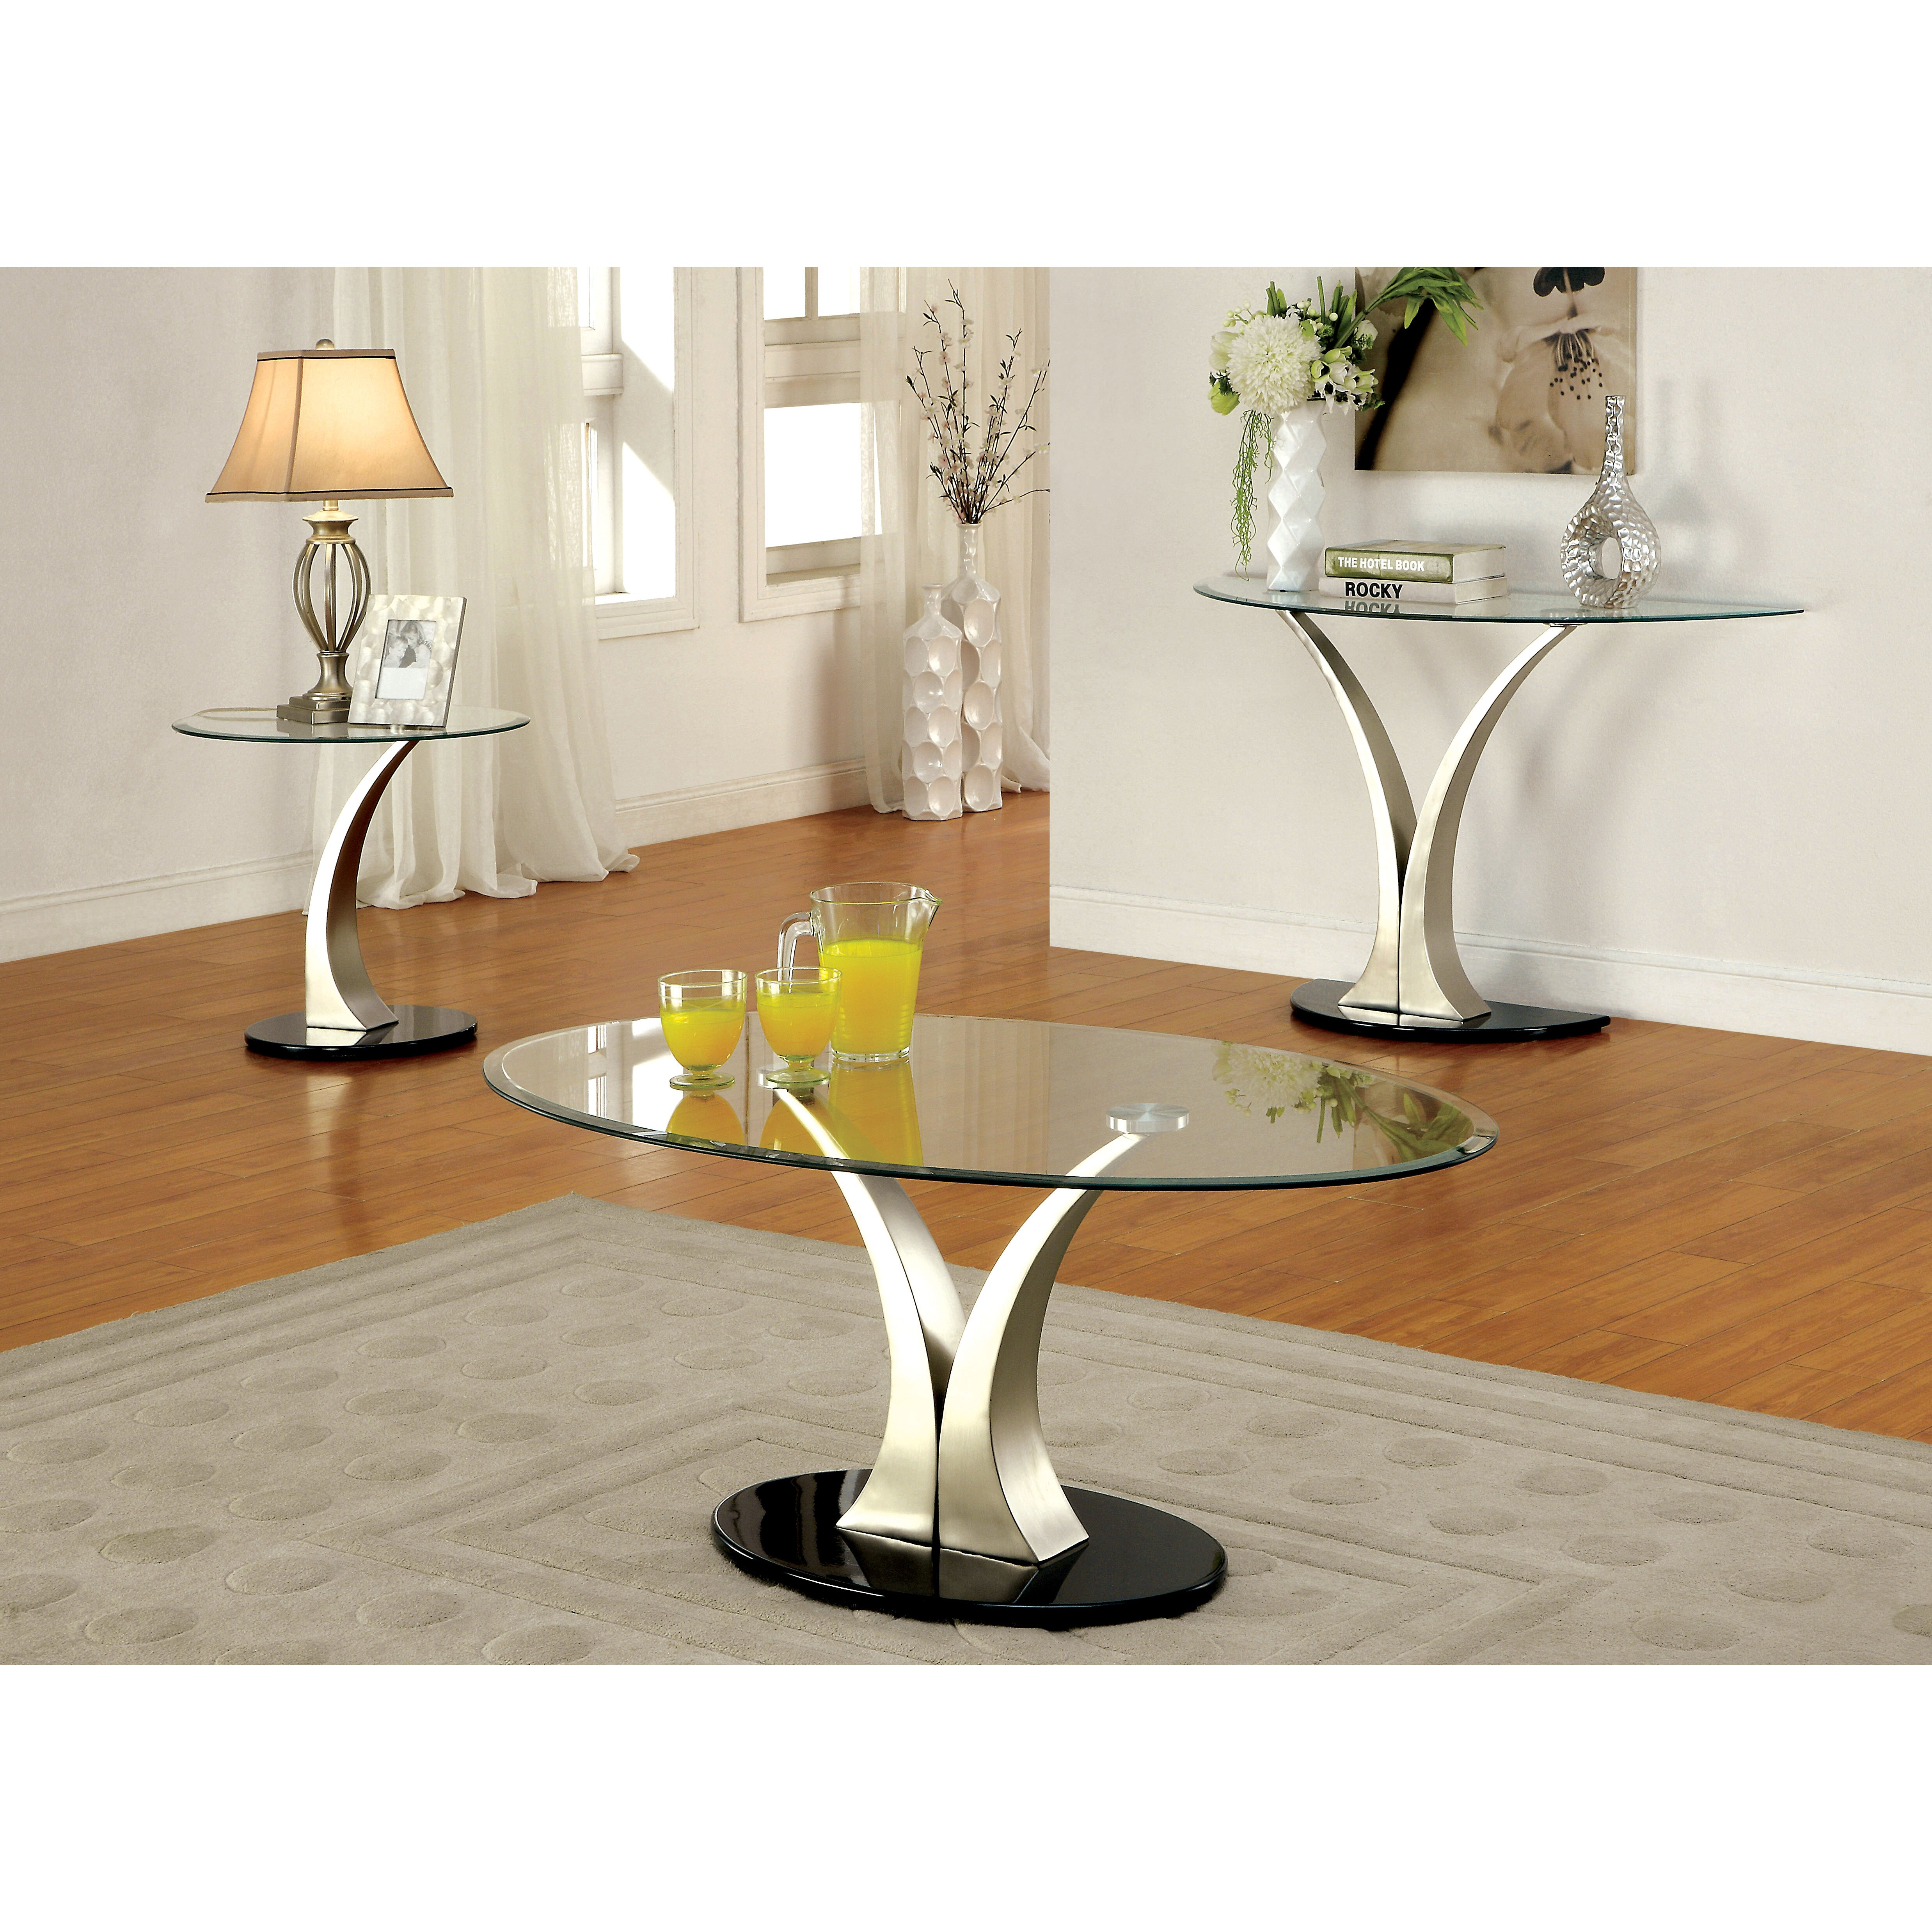 hokku designs sofia coffee table reviews wayfair. Black Bedroom Furniture Sets. Home Design Ideas